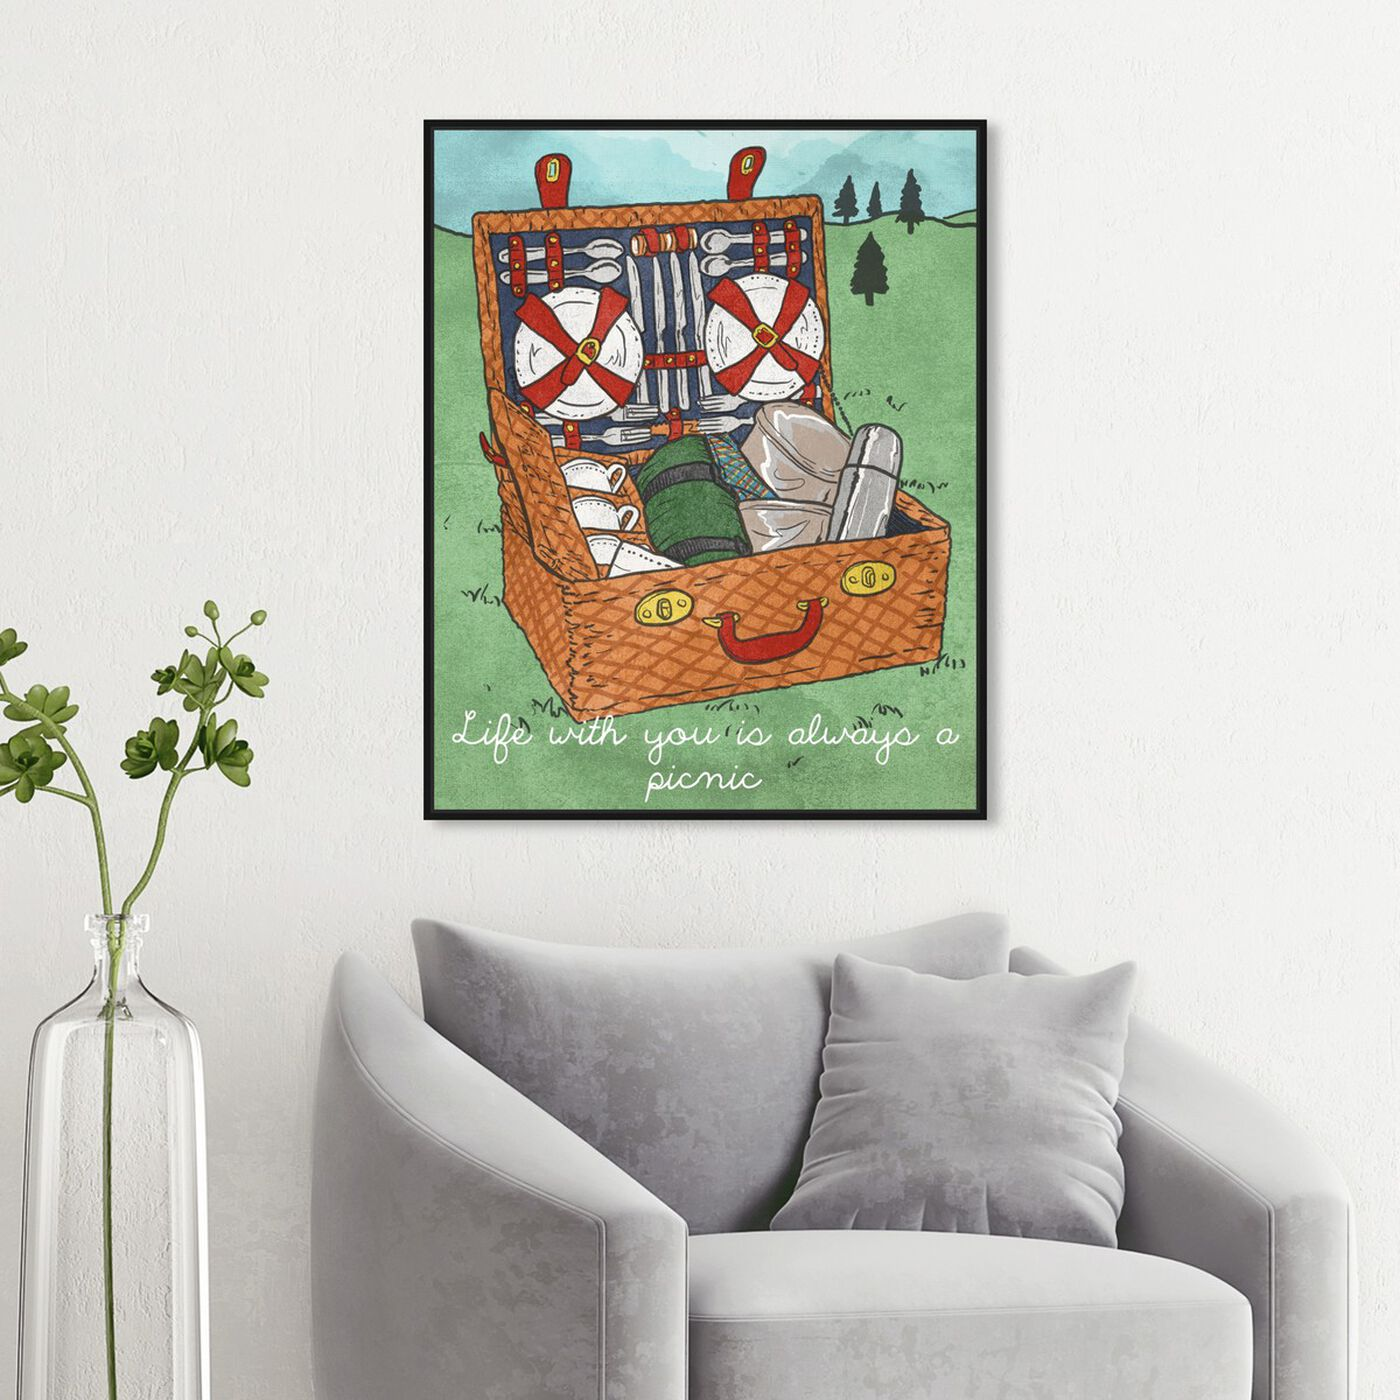 Hanging view of Always a Picnic featuring entertainment and hobbies and camping art.